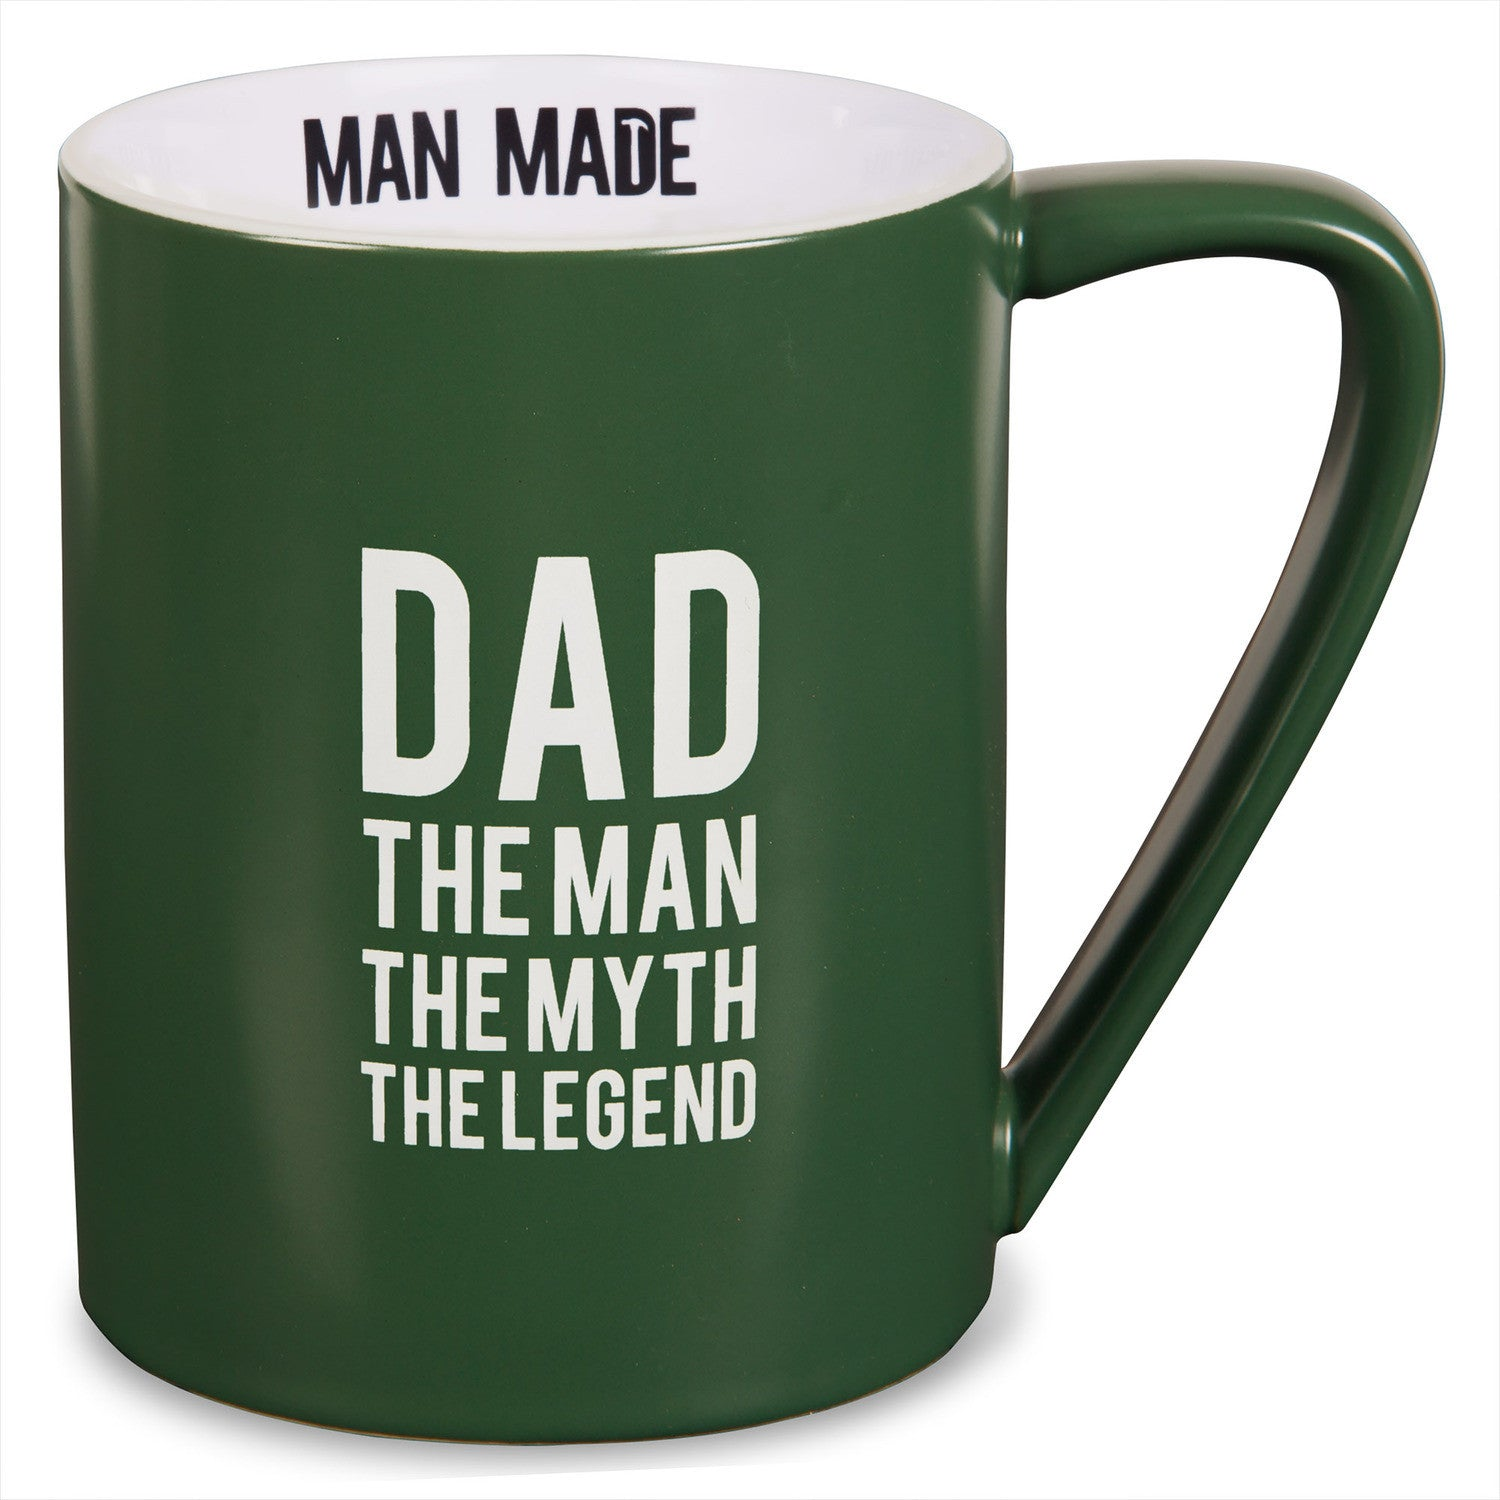 Dad the Man, the Myth, the Legend (Man Made) by Pavilion Gifts (Front)